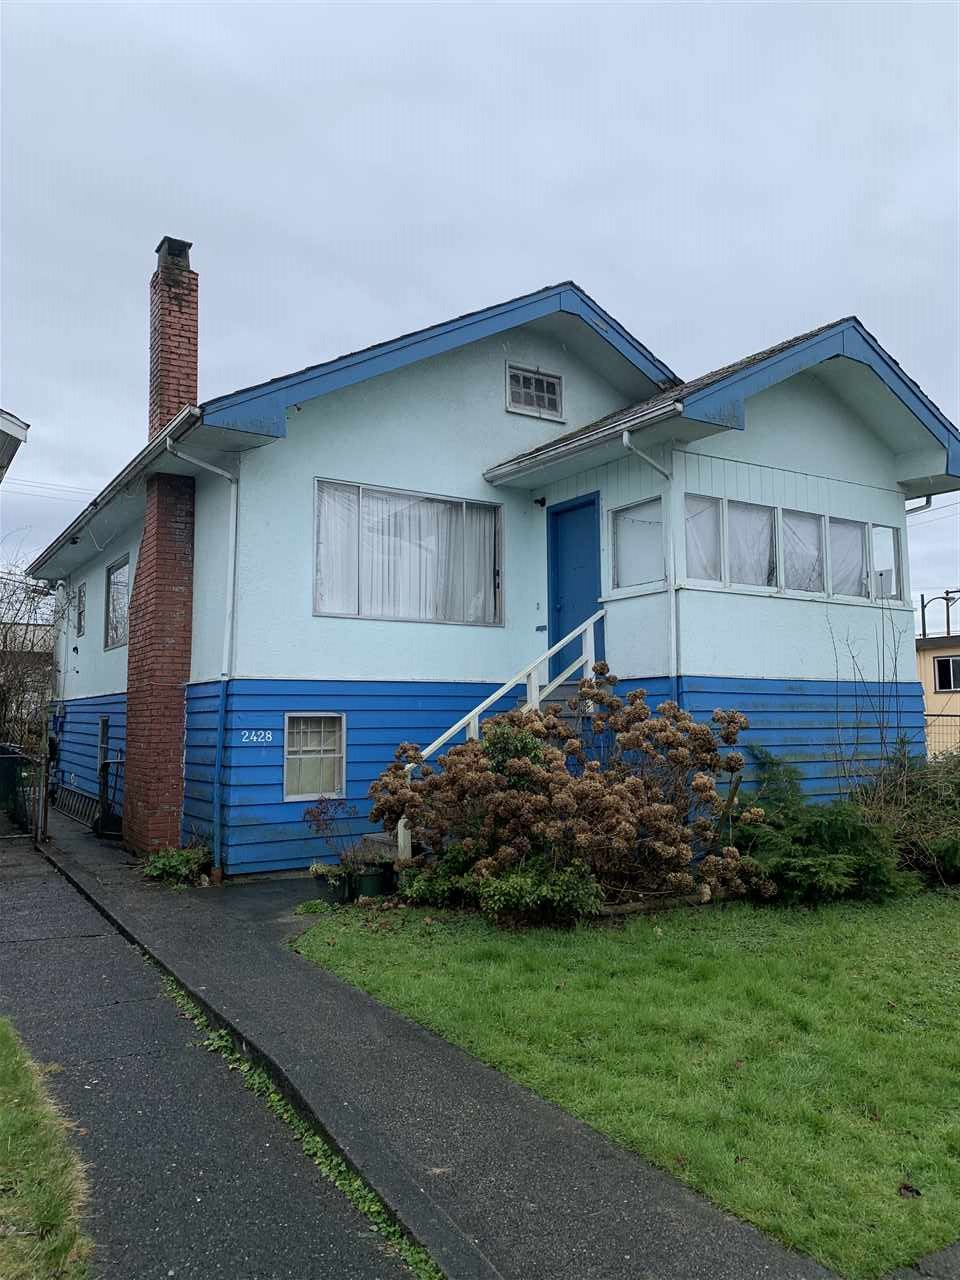 Removed: 2428 Franklin Street, Vancouver, BC - Removed on 2020-03-28 05:27:29